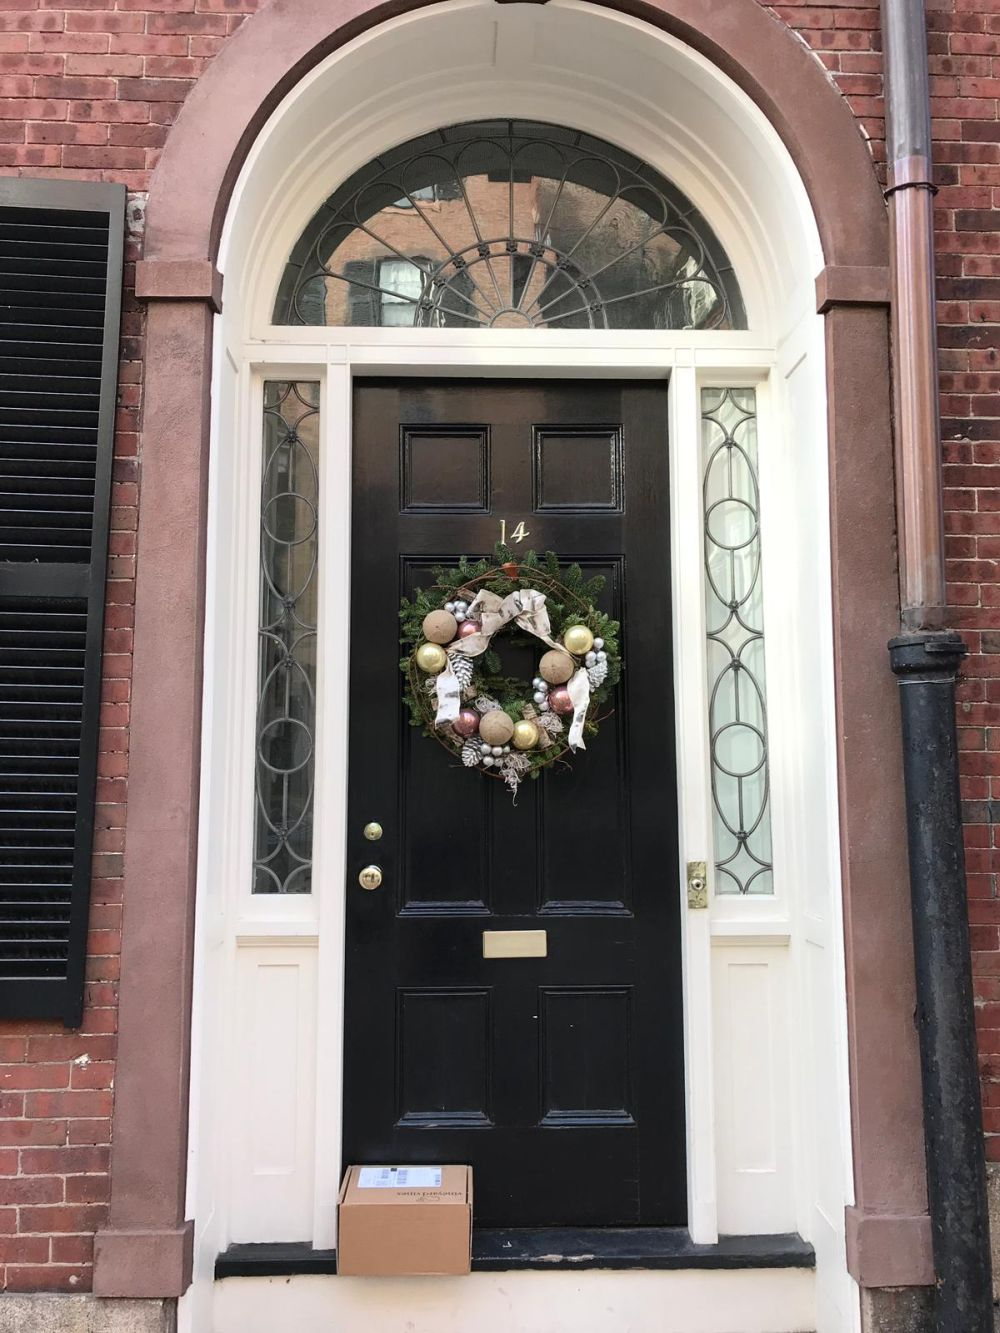 Since its Christmas you could decorate the wreath with a few ornaments that your tree could do without